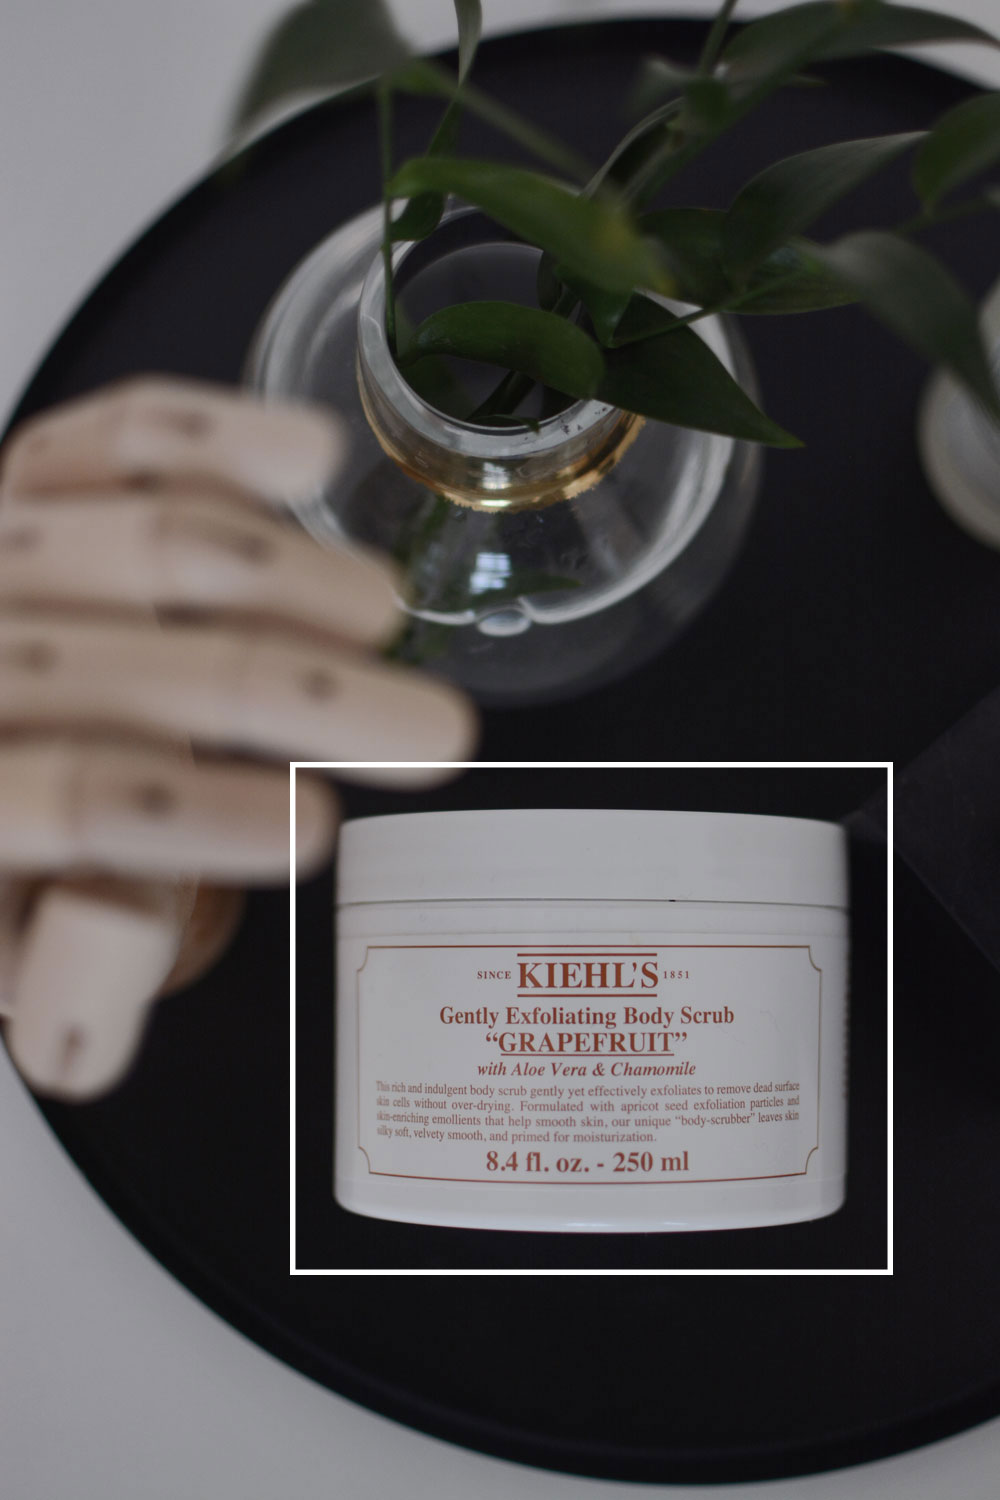 Hautpflege Favoriten, kiehls, bodyscrub